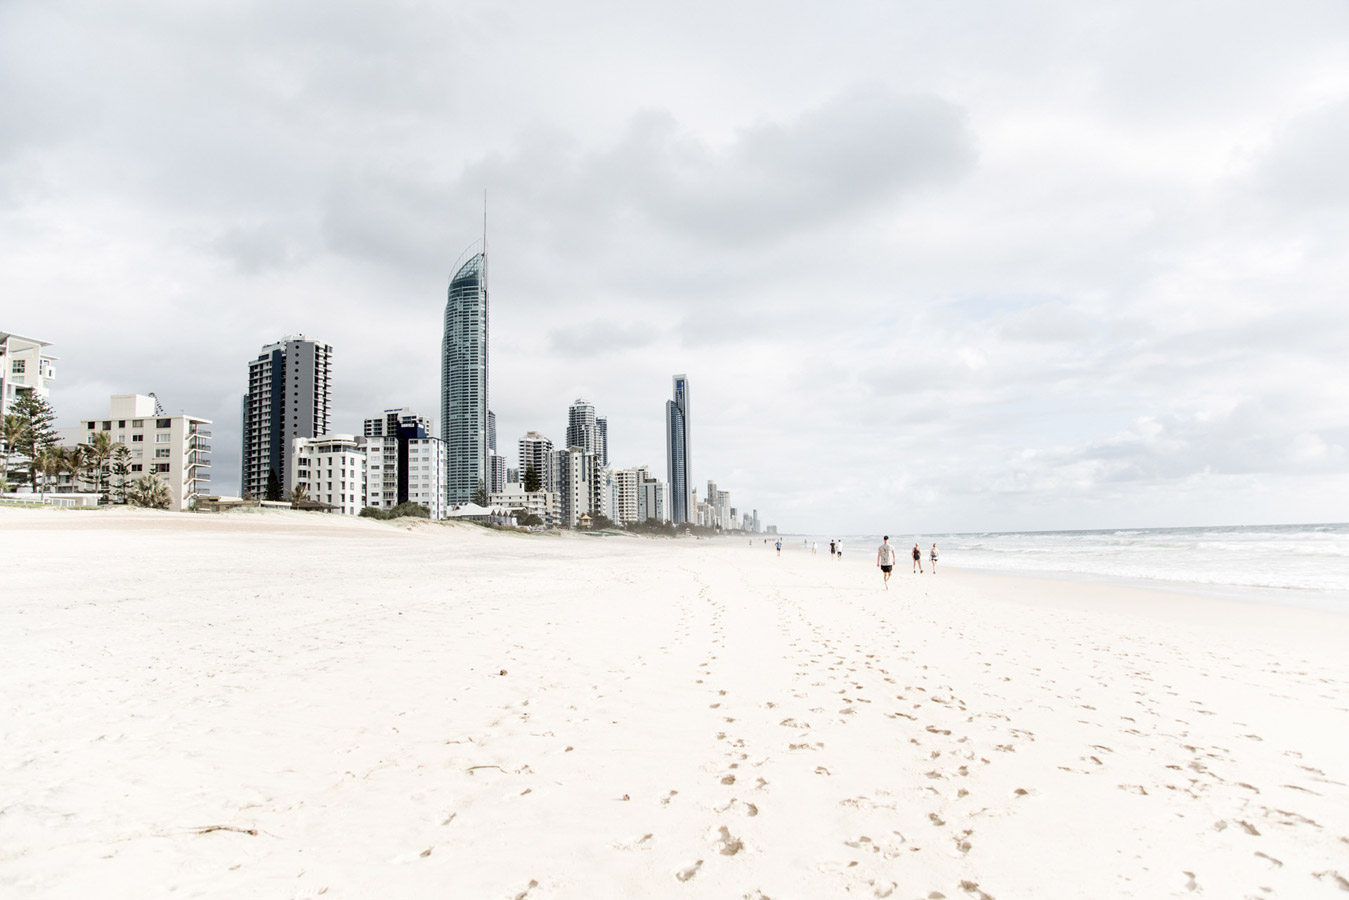 """Surfers Paradise"", © Ann Orman, Auckland, New Zealand, Travel, Rangefinder Fine Art Contest"